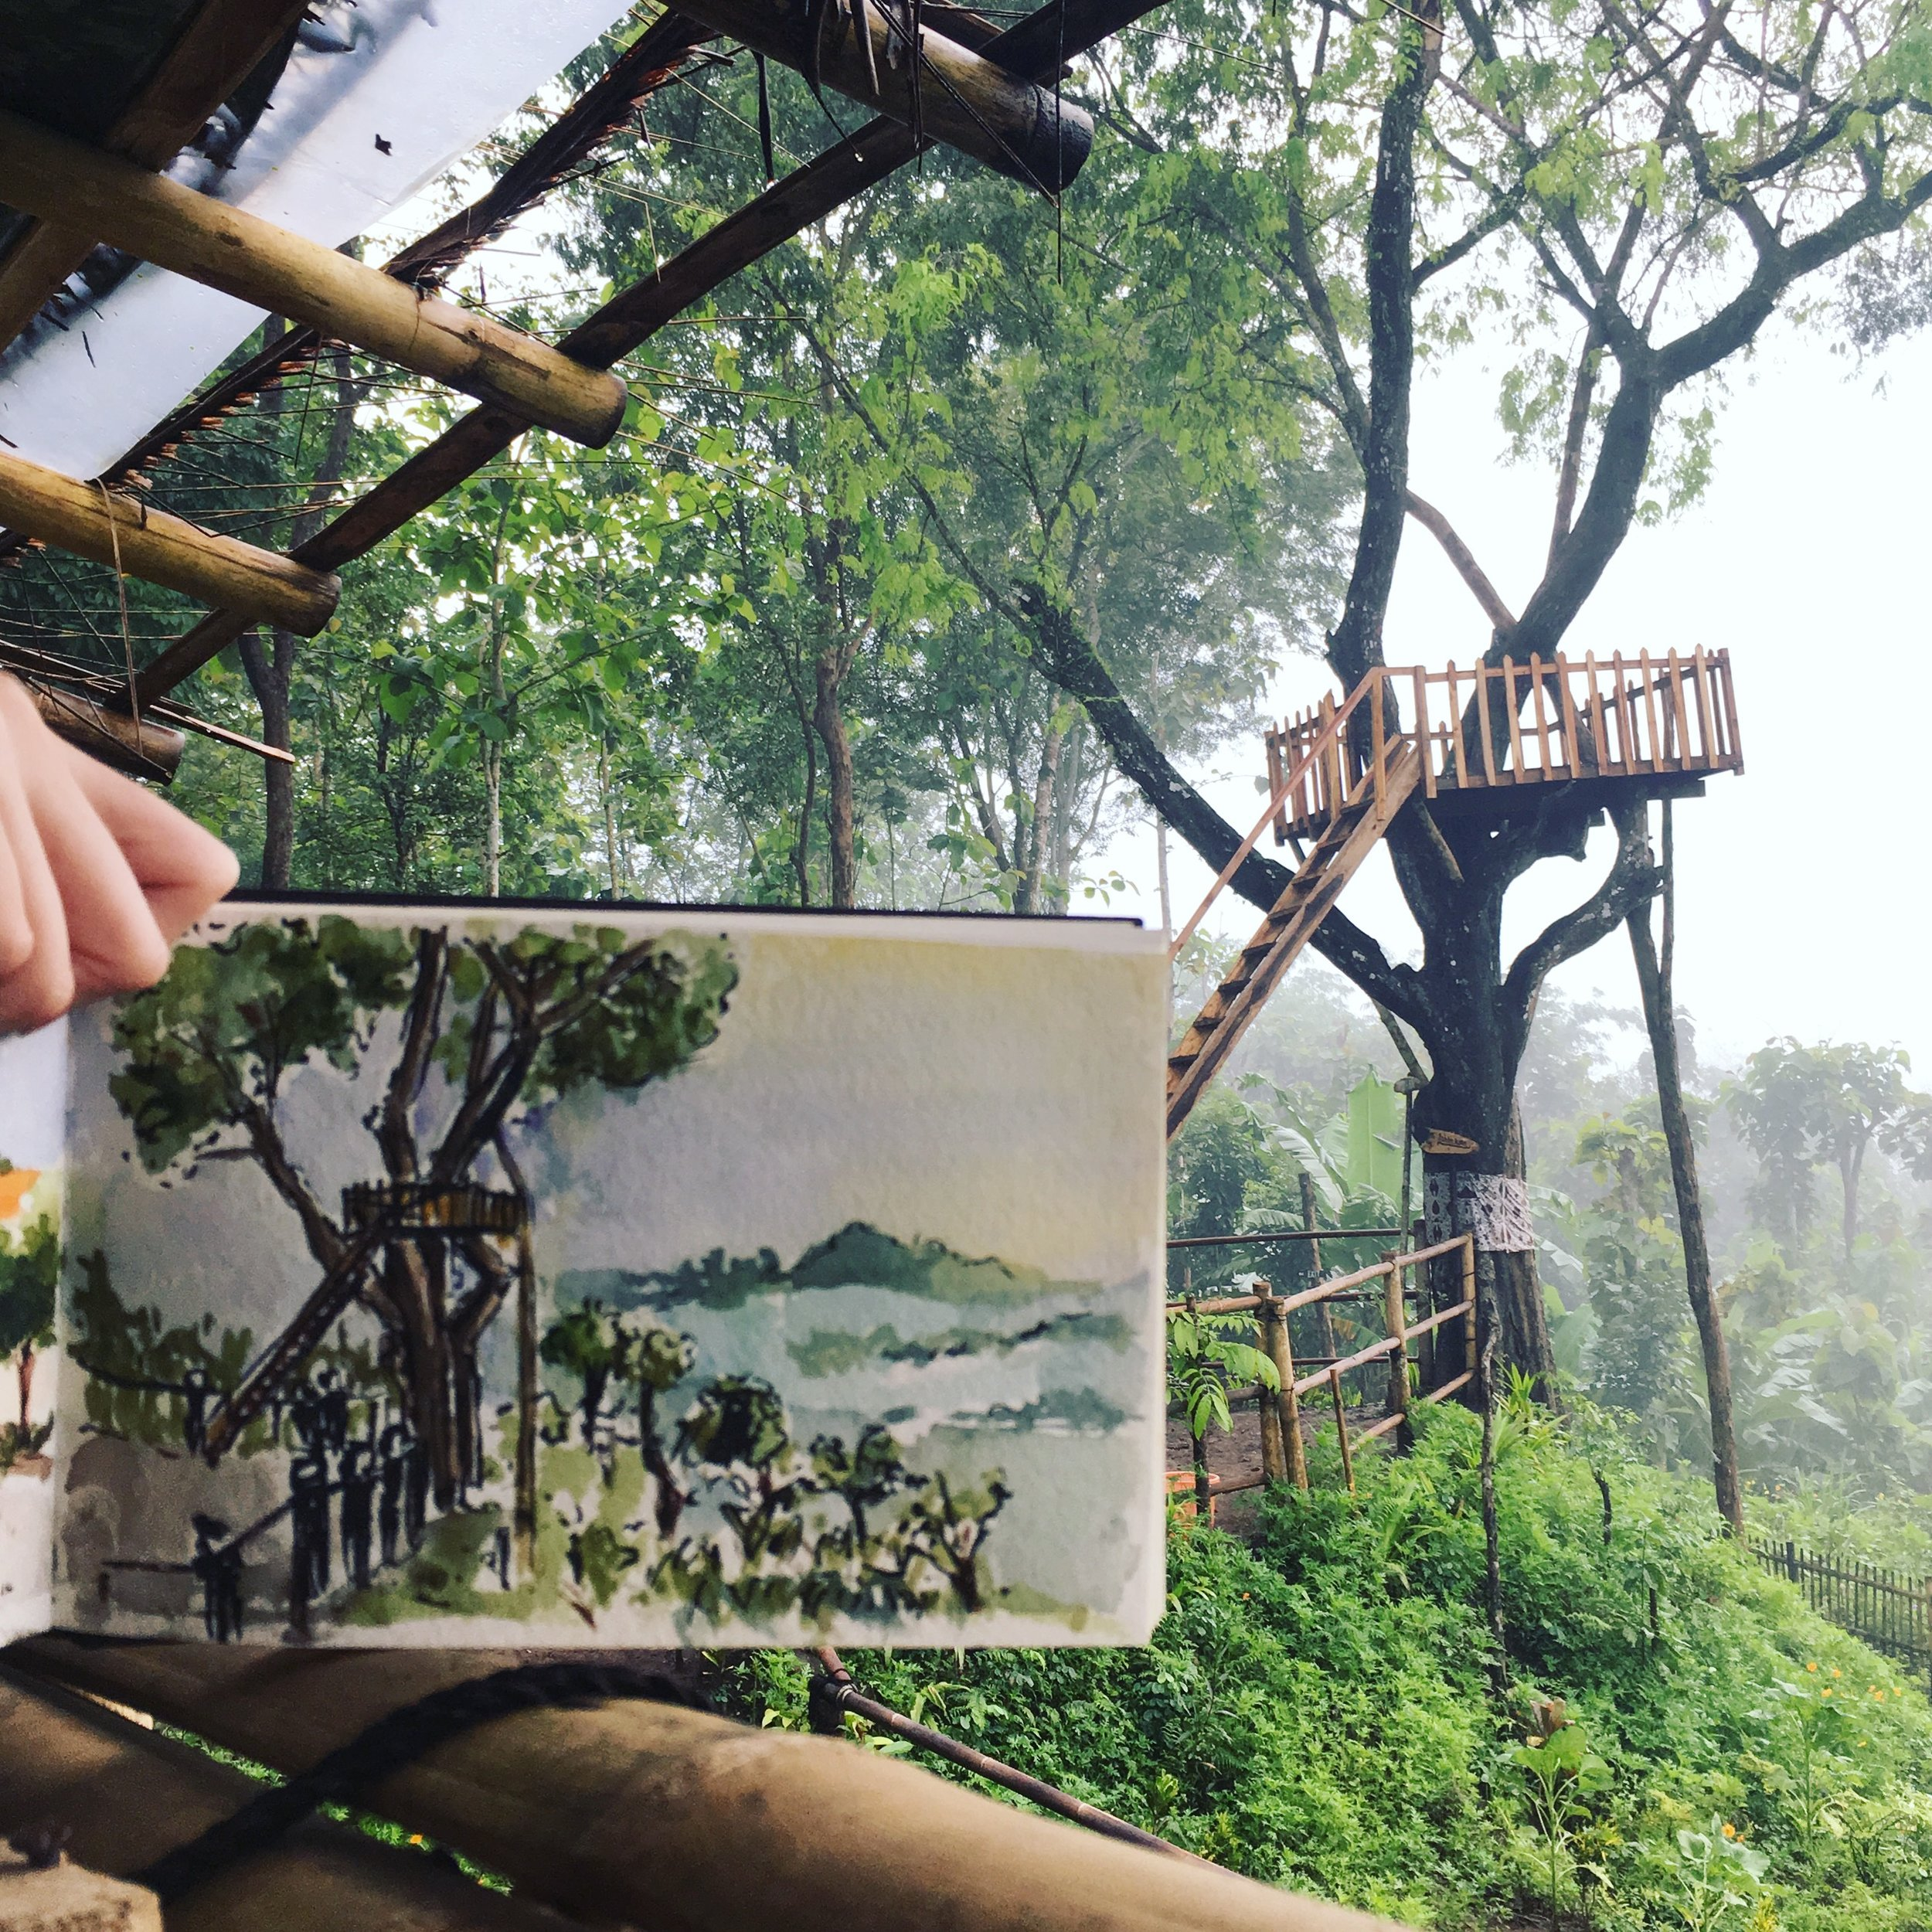 This was sketched on a treehouse on Bukit Barede when we caught the sunrise overlooking the Borobudur.